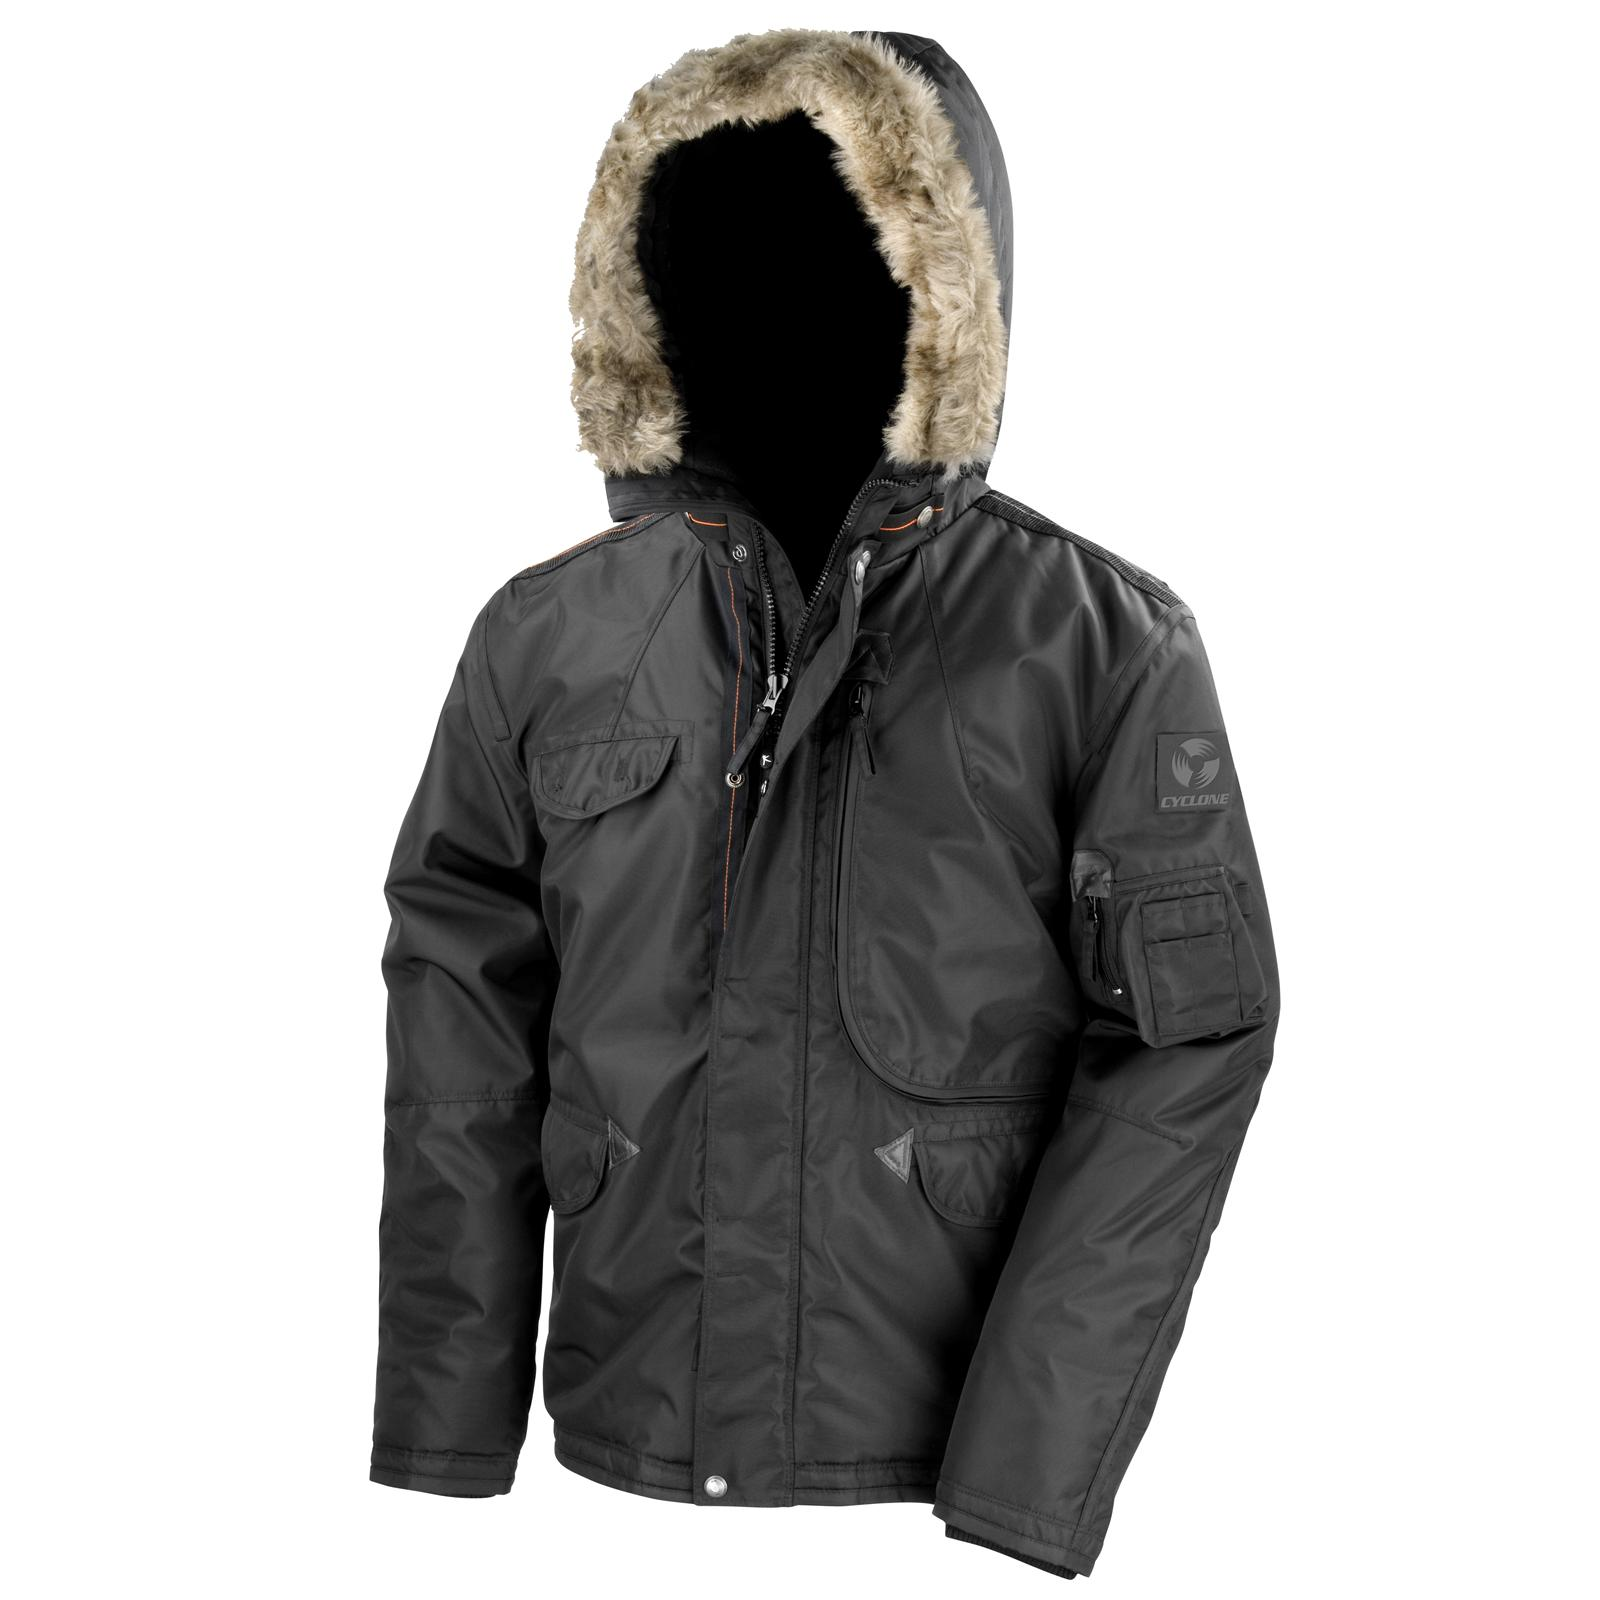 d50629d1a Details about New RESULT Mens Urban Outdoor Warm Ultimate Cyclone Parka  Jacket Black S-3XL